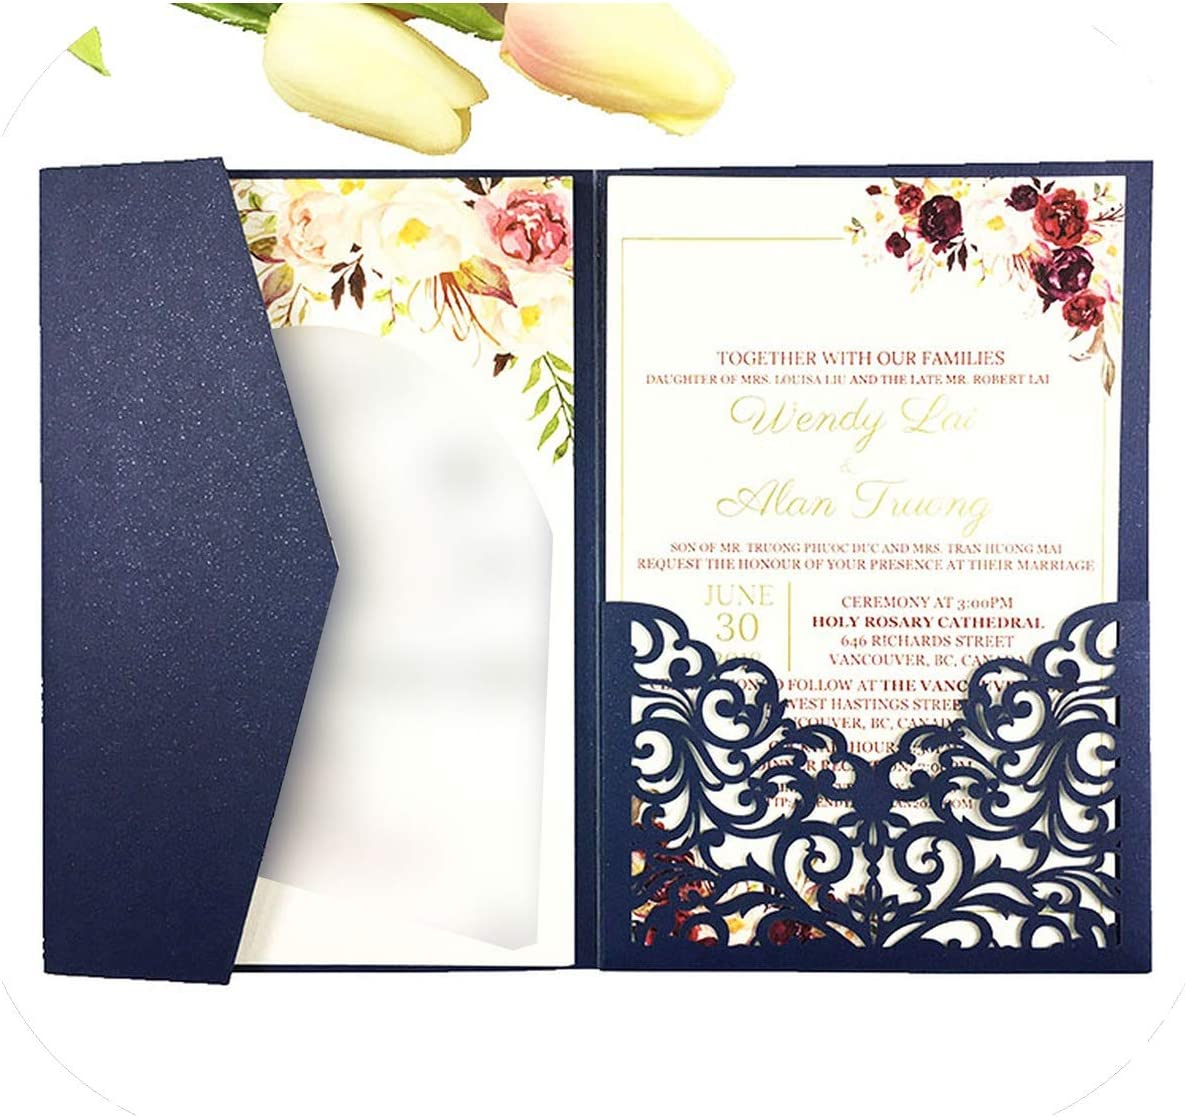 Amazon.com: 50pcs/lot Halloween Trifold Card pocketfold Wedding Invitation  Cards Three fold Pocket Laser Cut Invite Greeting Covers Party,Dark Navy  Blue,Blank one Page Inner: Health & Personal Care